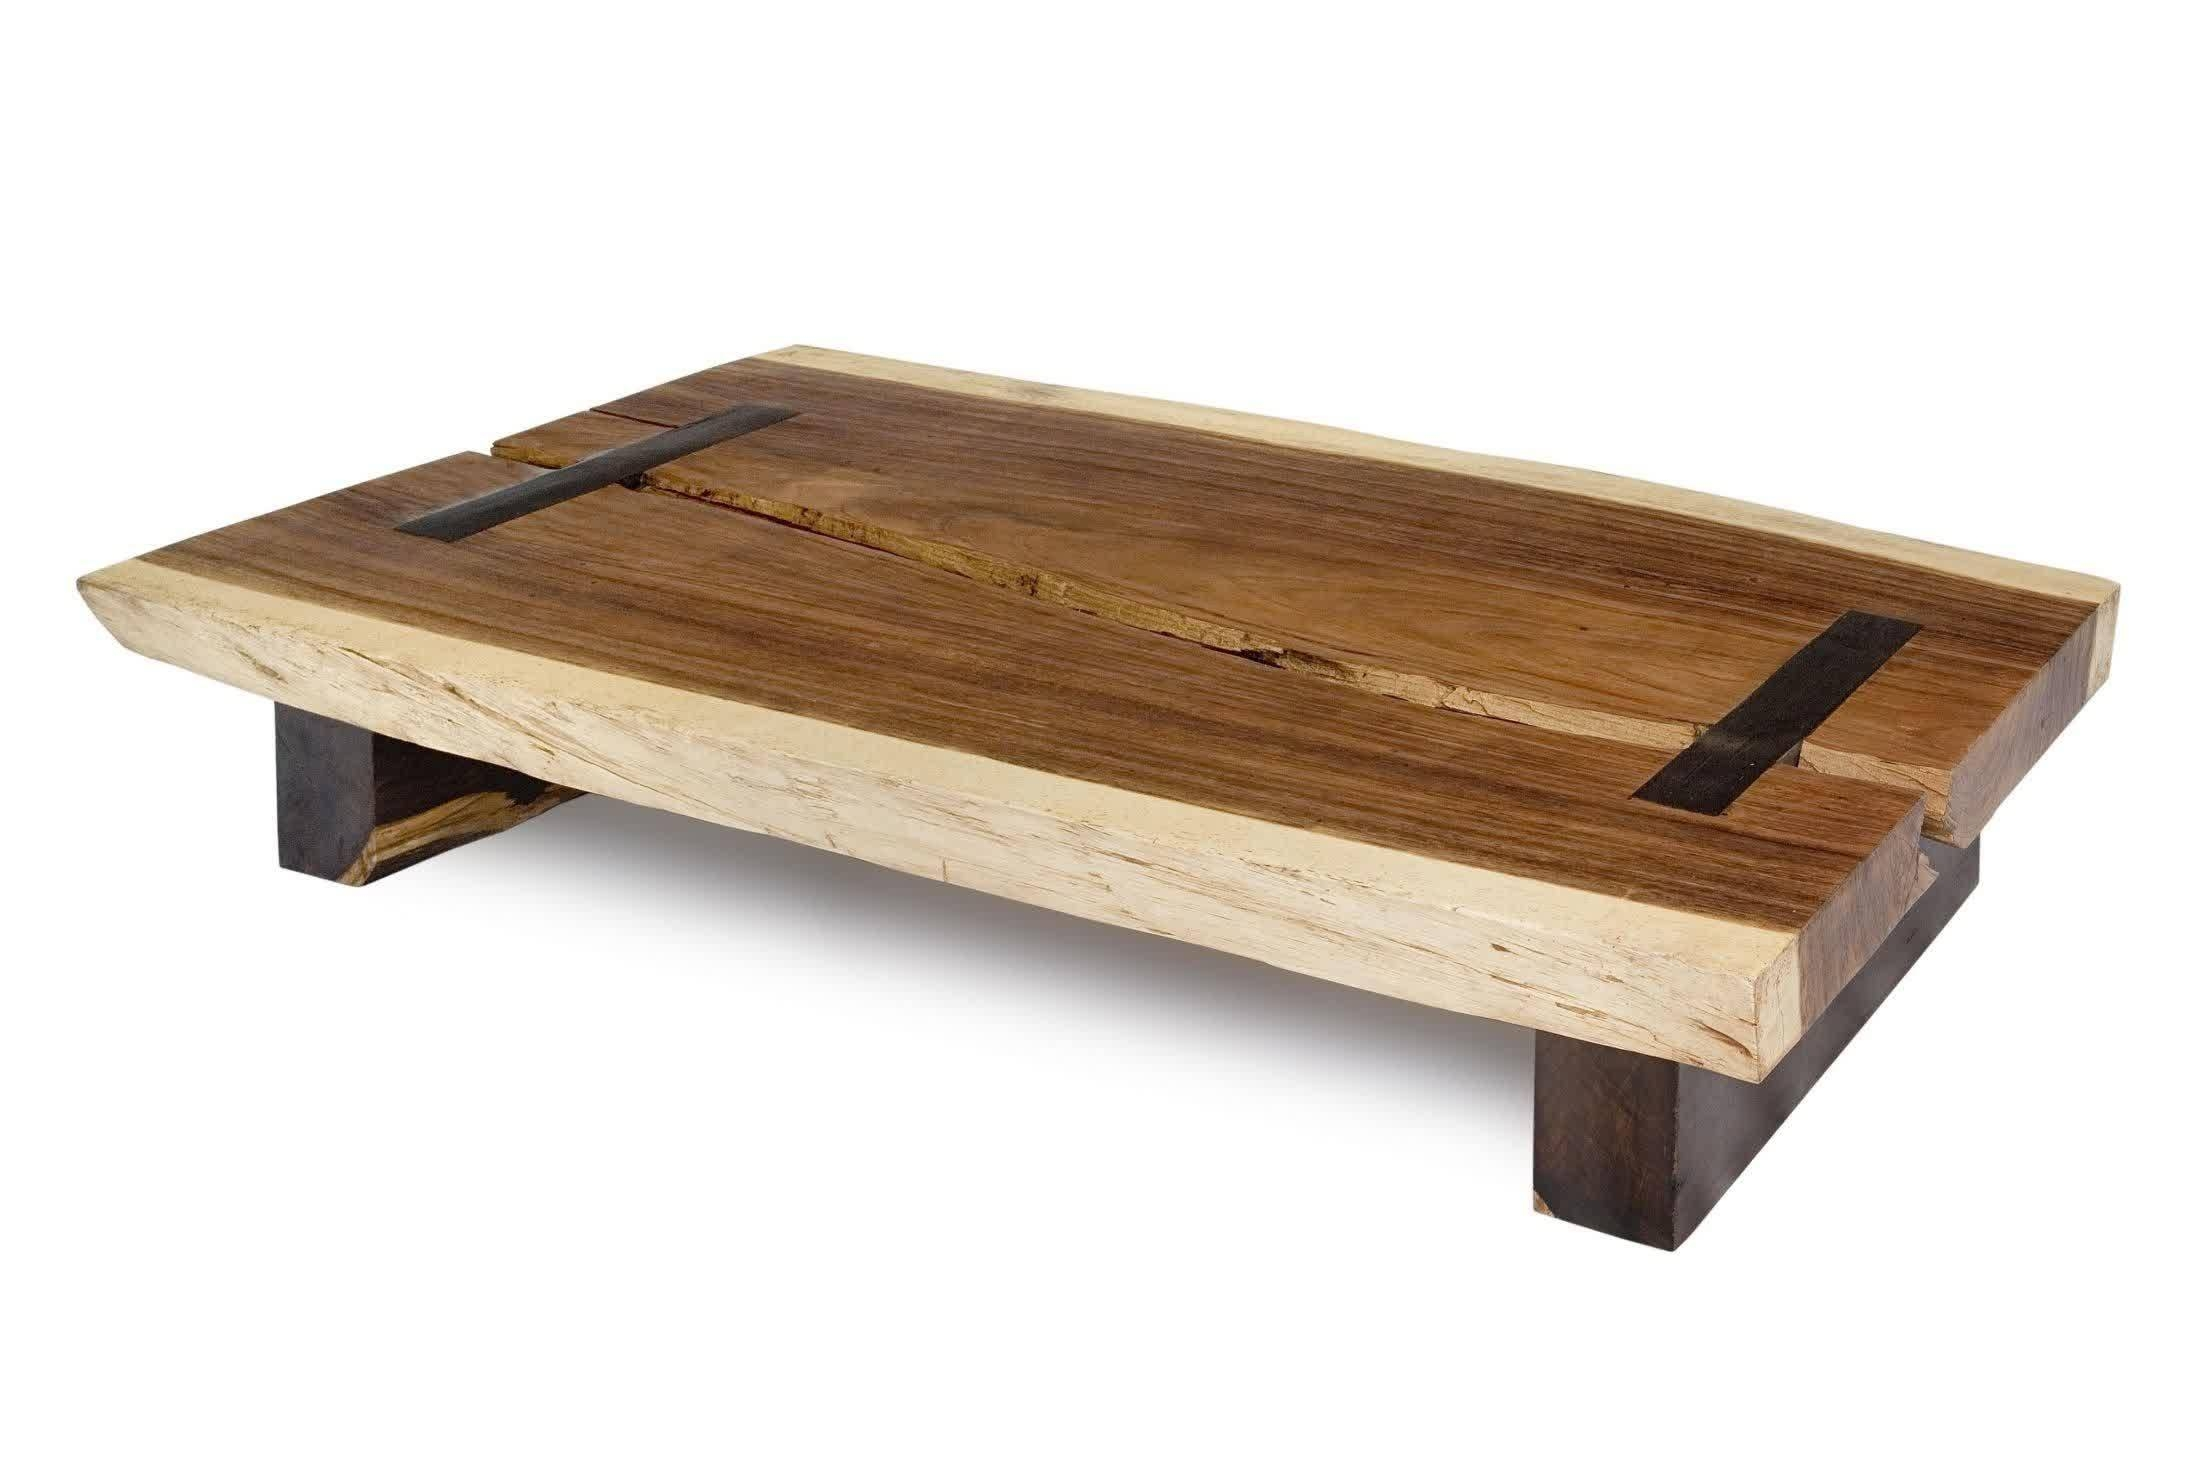 Perfect Low Coffee Table – Low Coffee Table Height, Low Level Throughout Large Low Oak Coffee Tables (View 1 of 30)